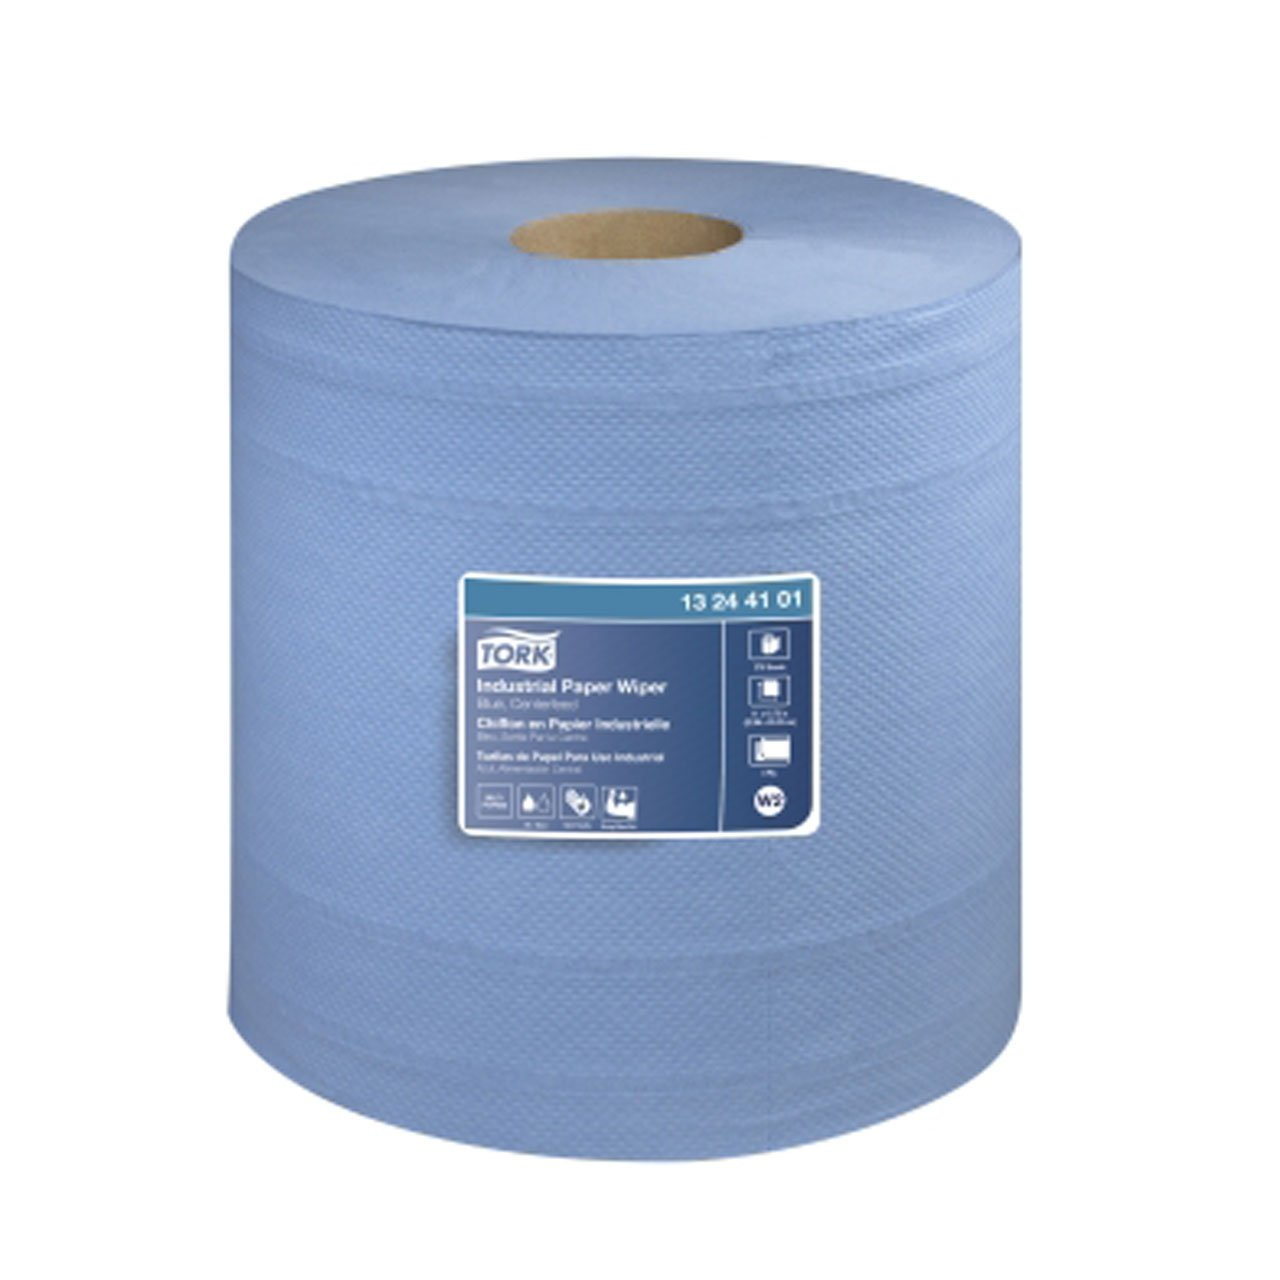 Tork 13244101 Industrial Centerfeed 4 Ply Paper Wiper Blue